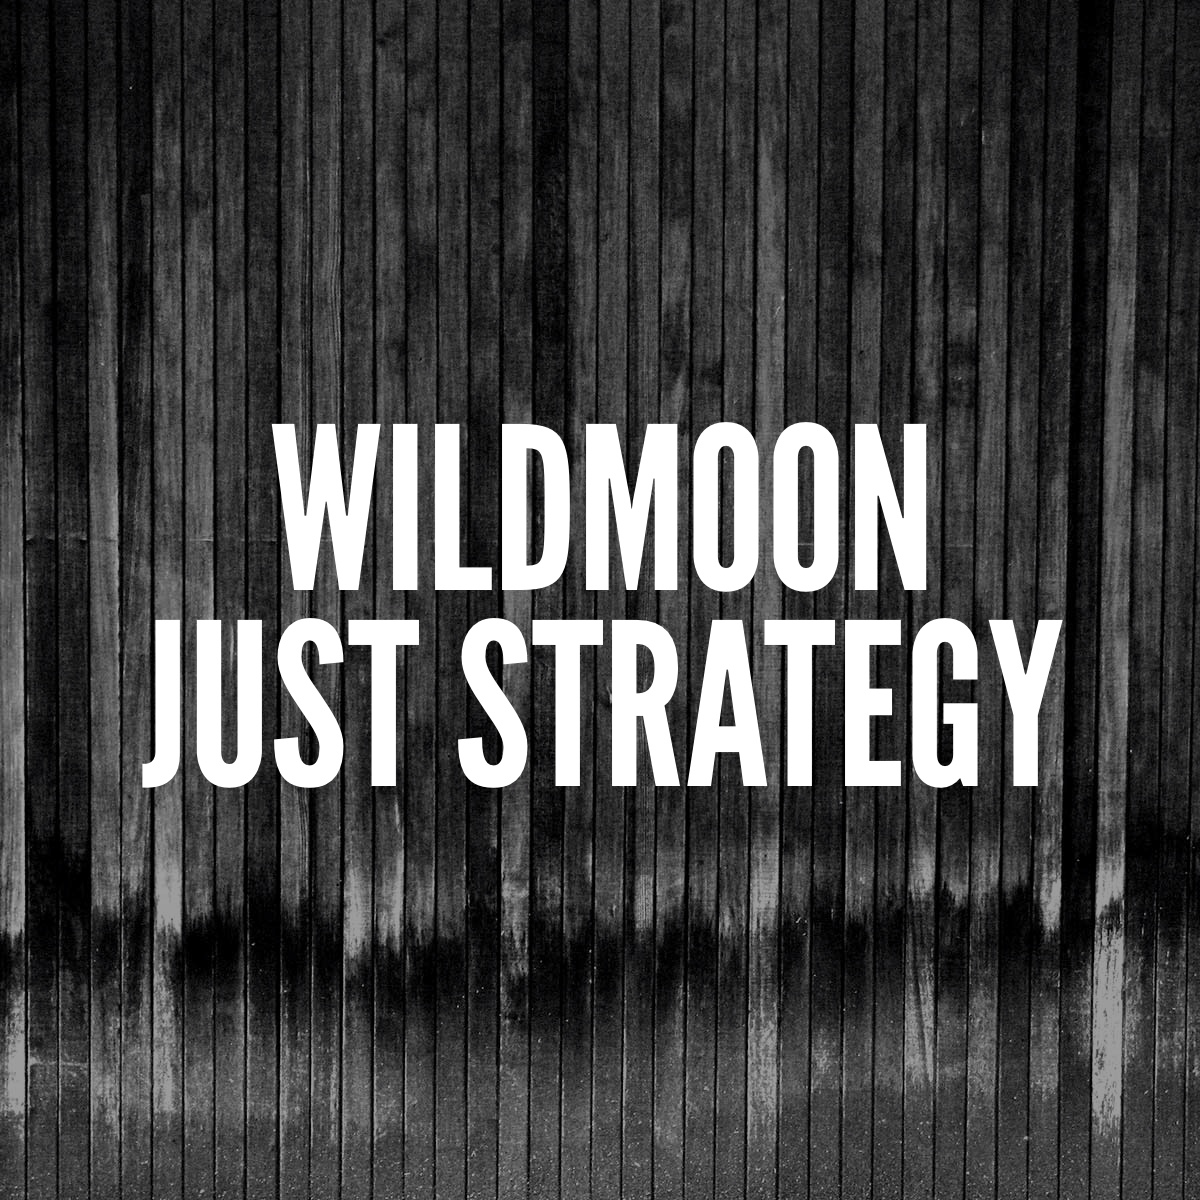 Just Strategy